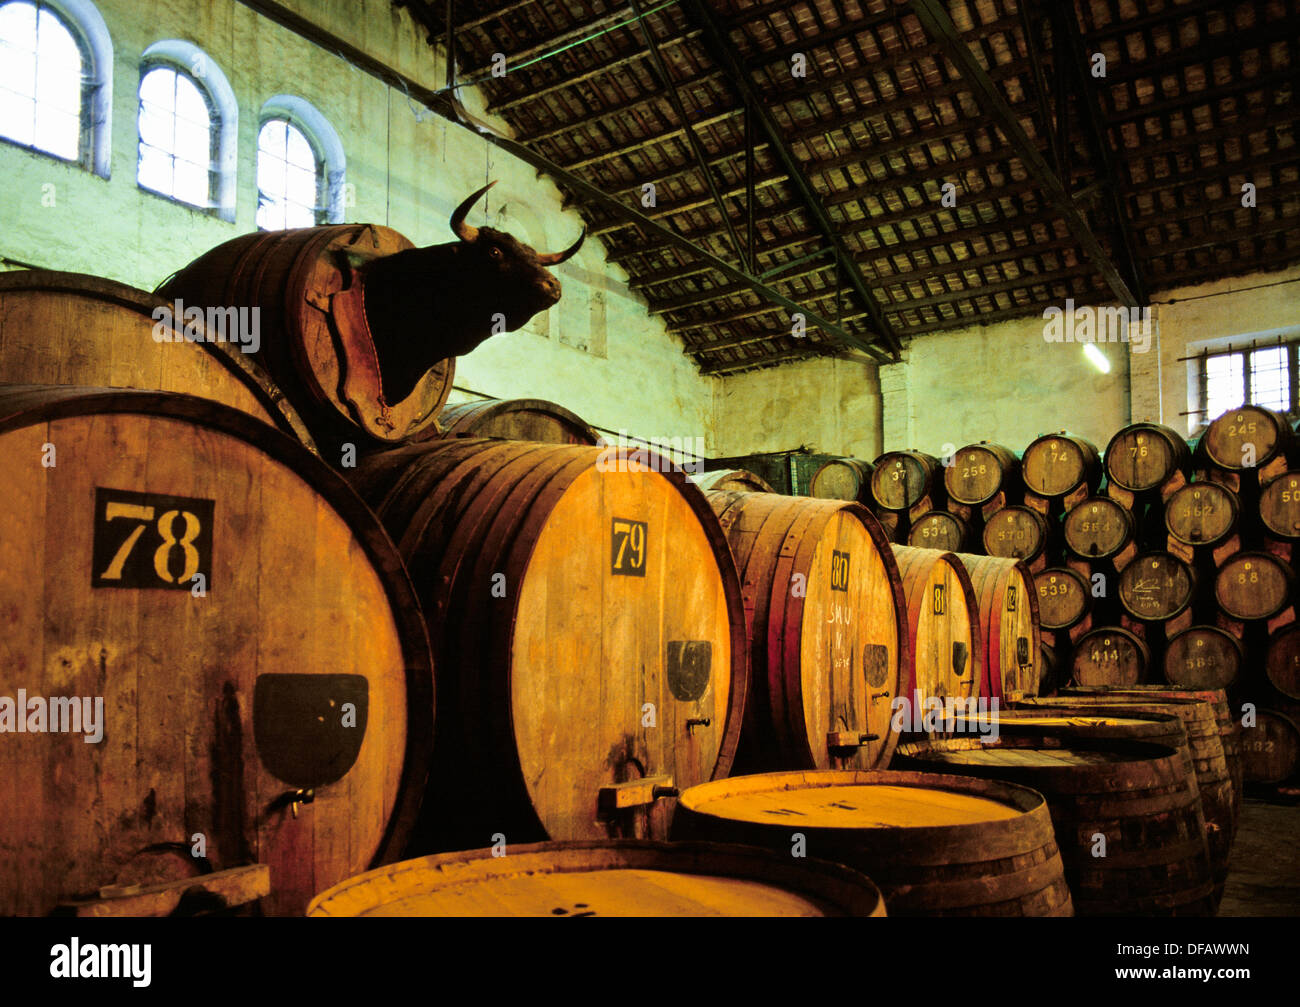 Wine casks torres wineries villafranca del pened s barcelona spain stock photo royalty free - Bodegas torres vilafranca ...